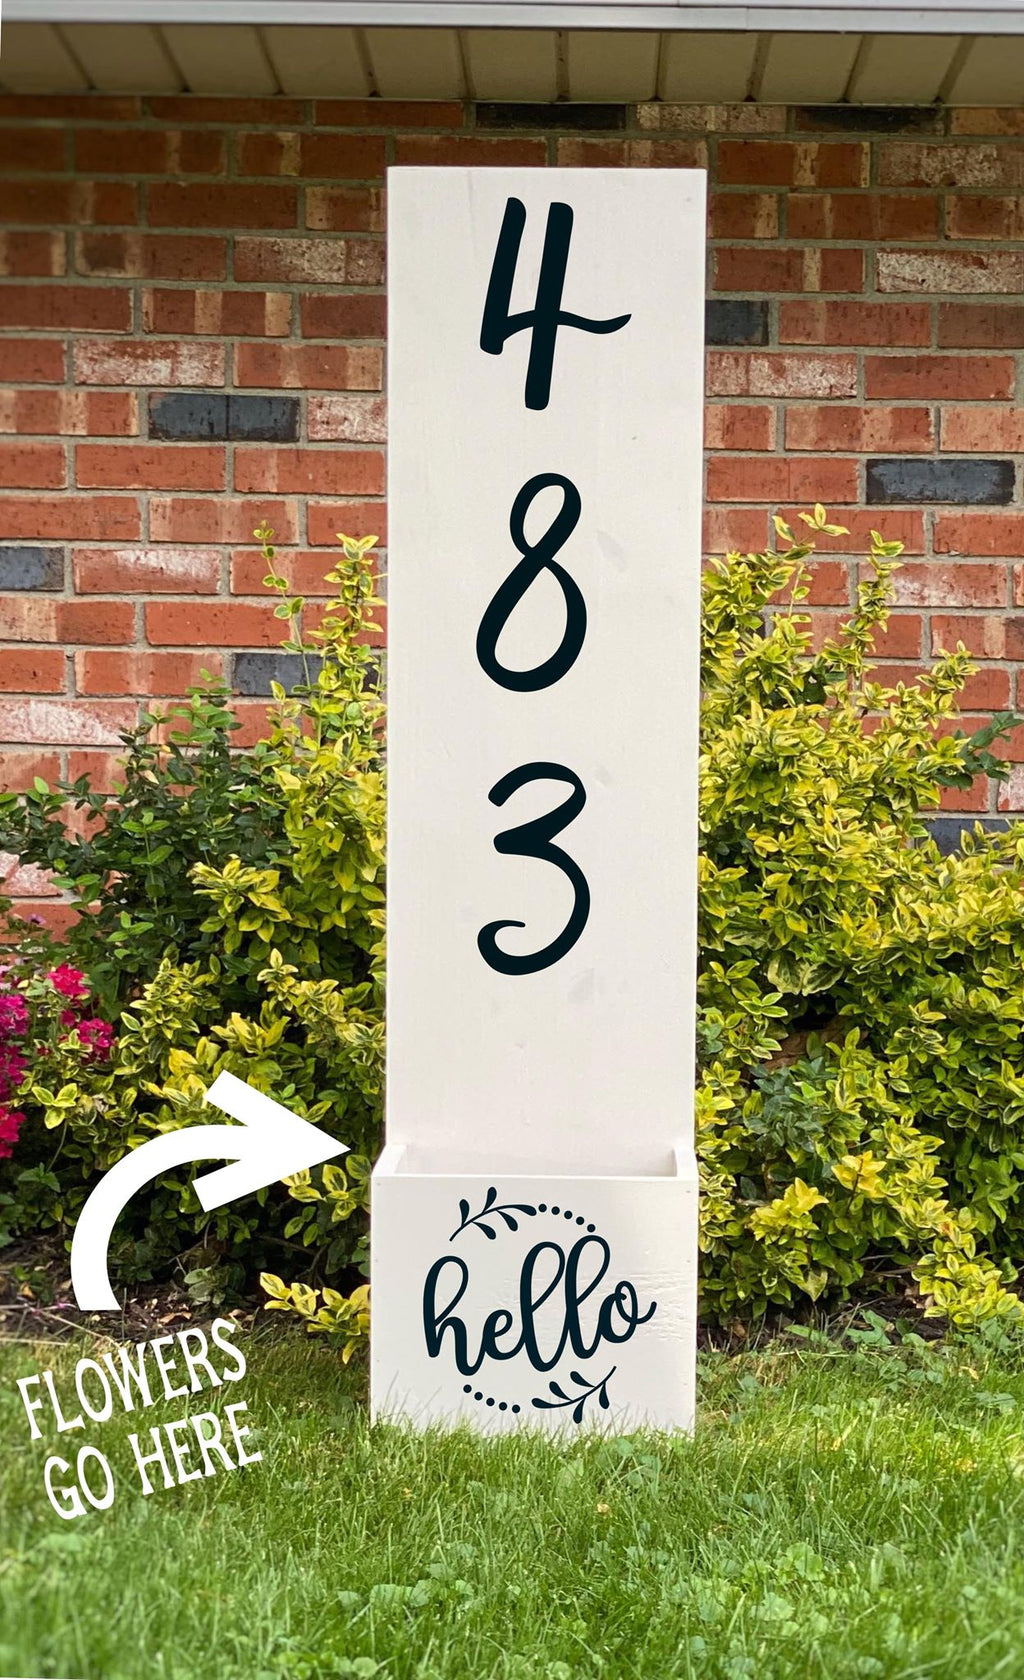 Porch Planter - House number with hello